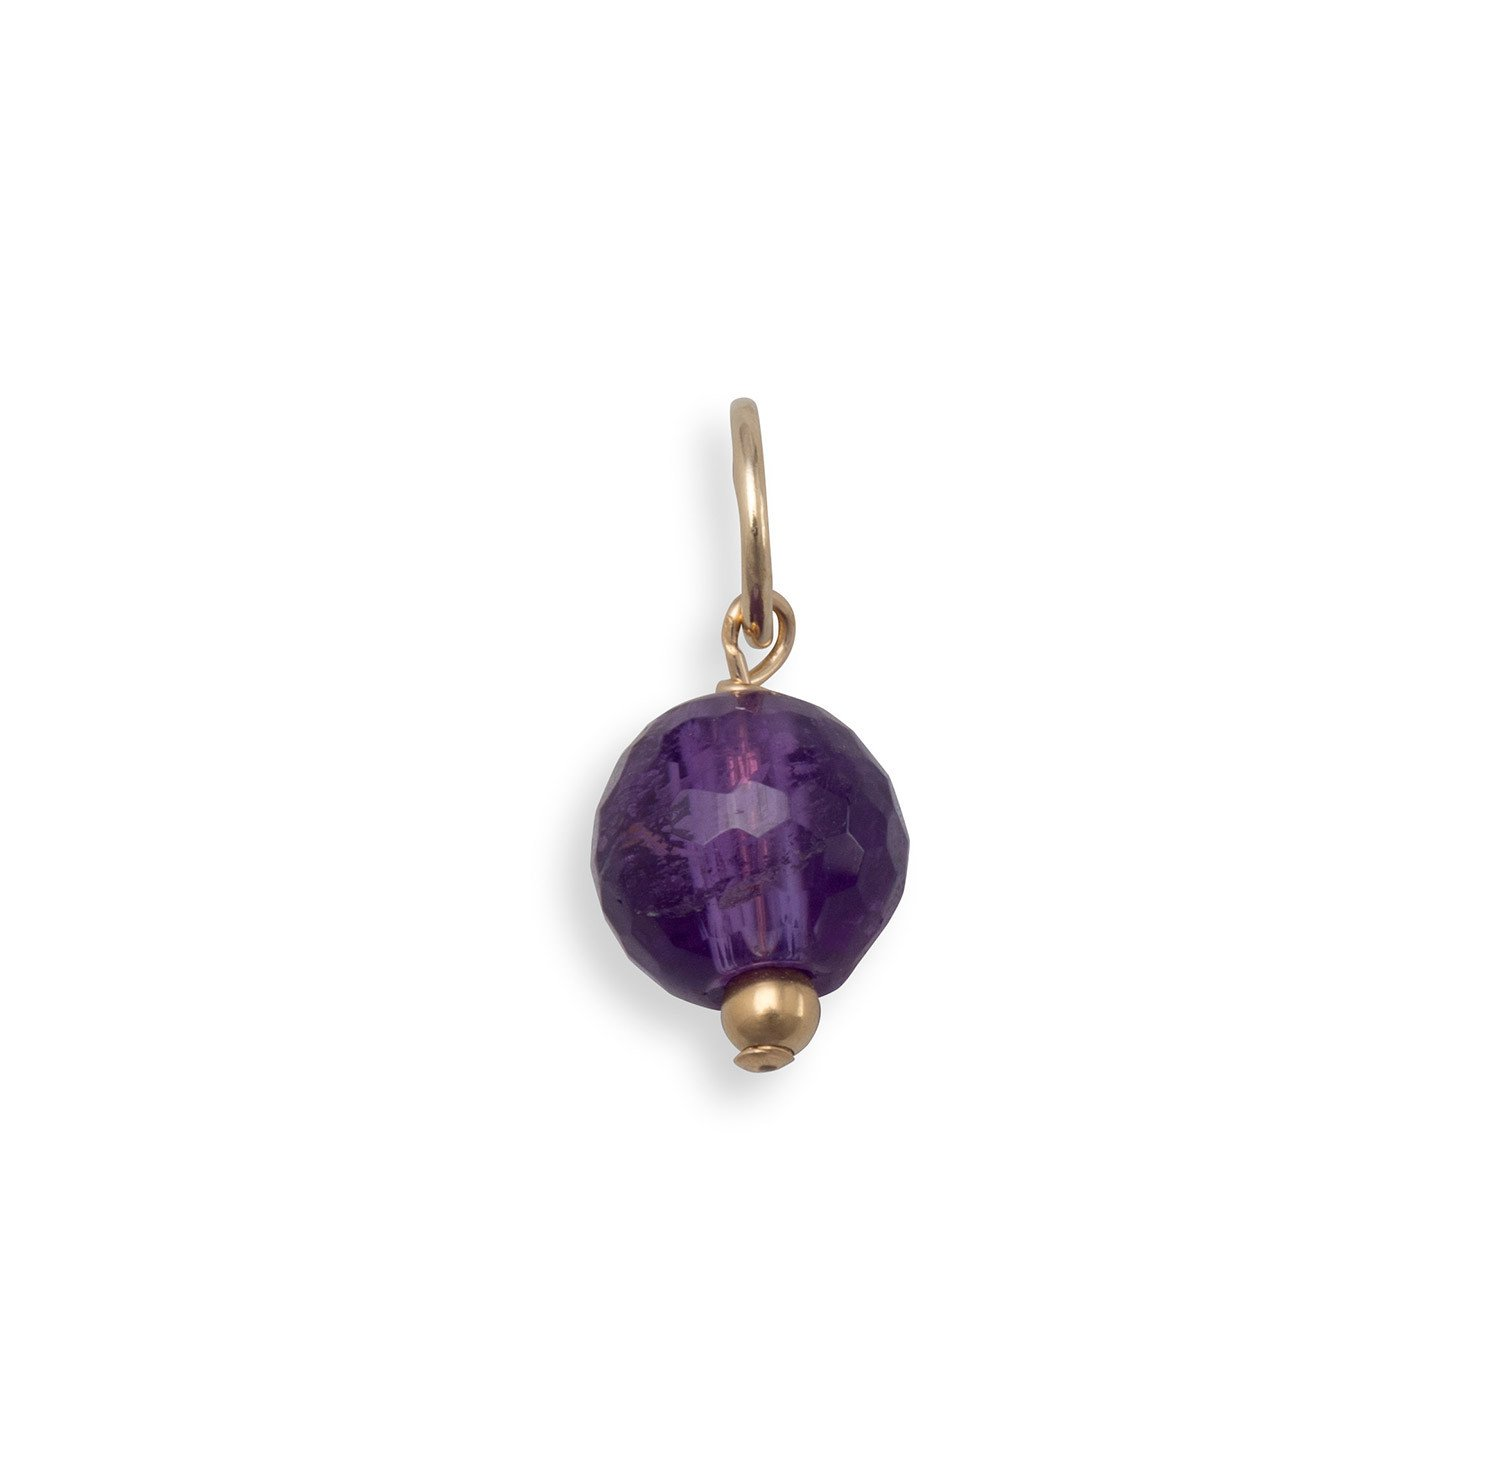 14/20 Gold Filled Faceted Amethyst Bead Charm – February Birthstone